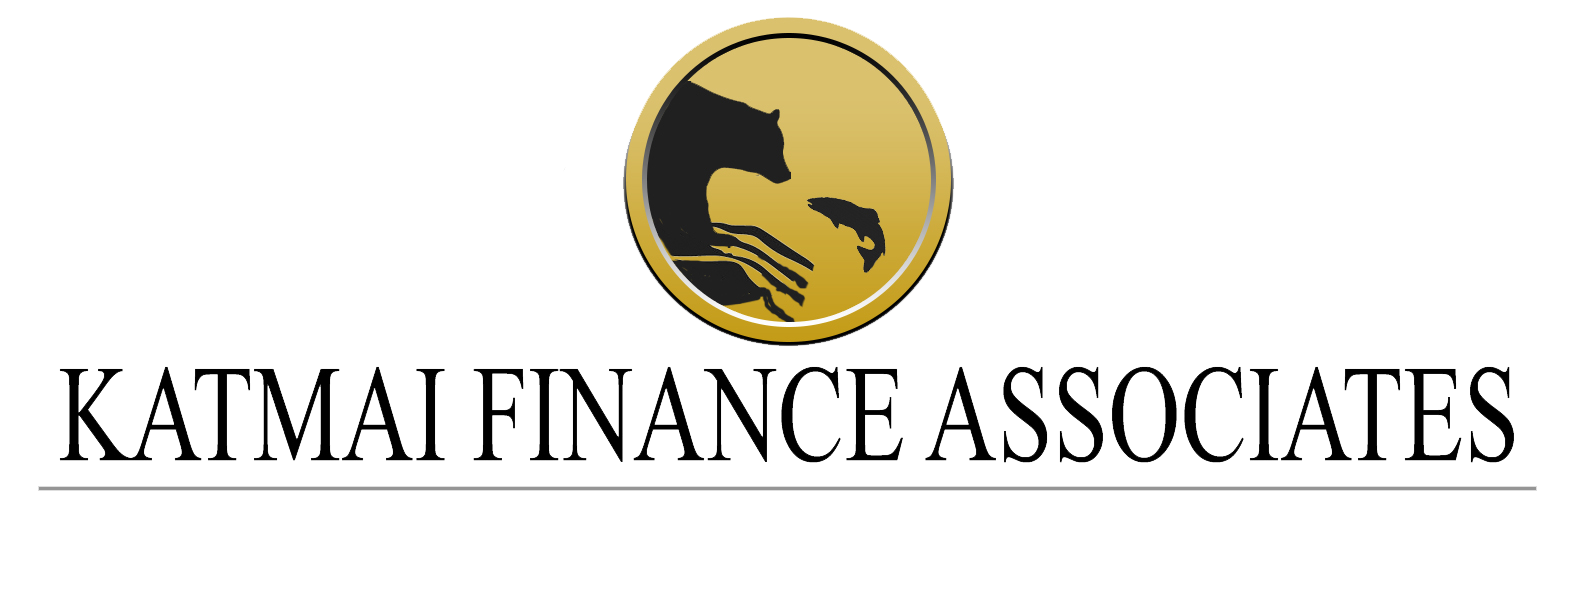 Katmai Finance Associates Logo